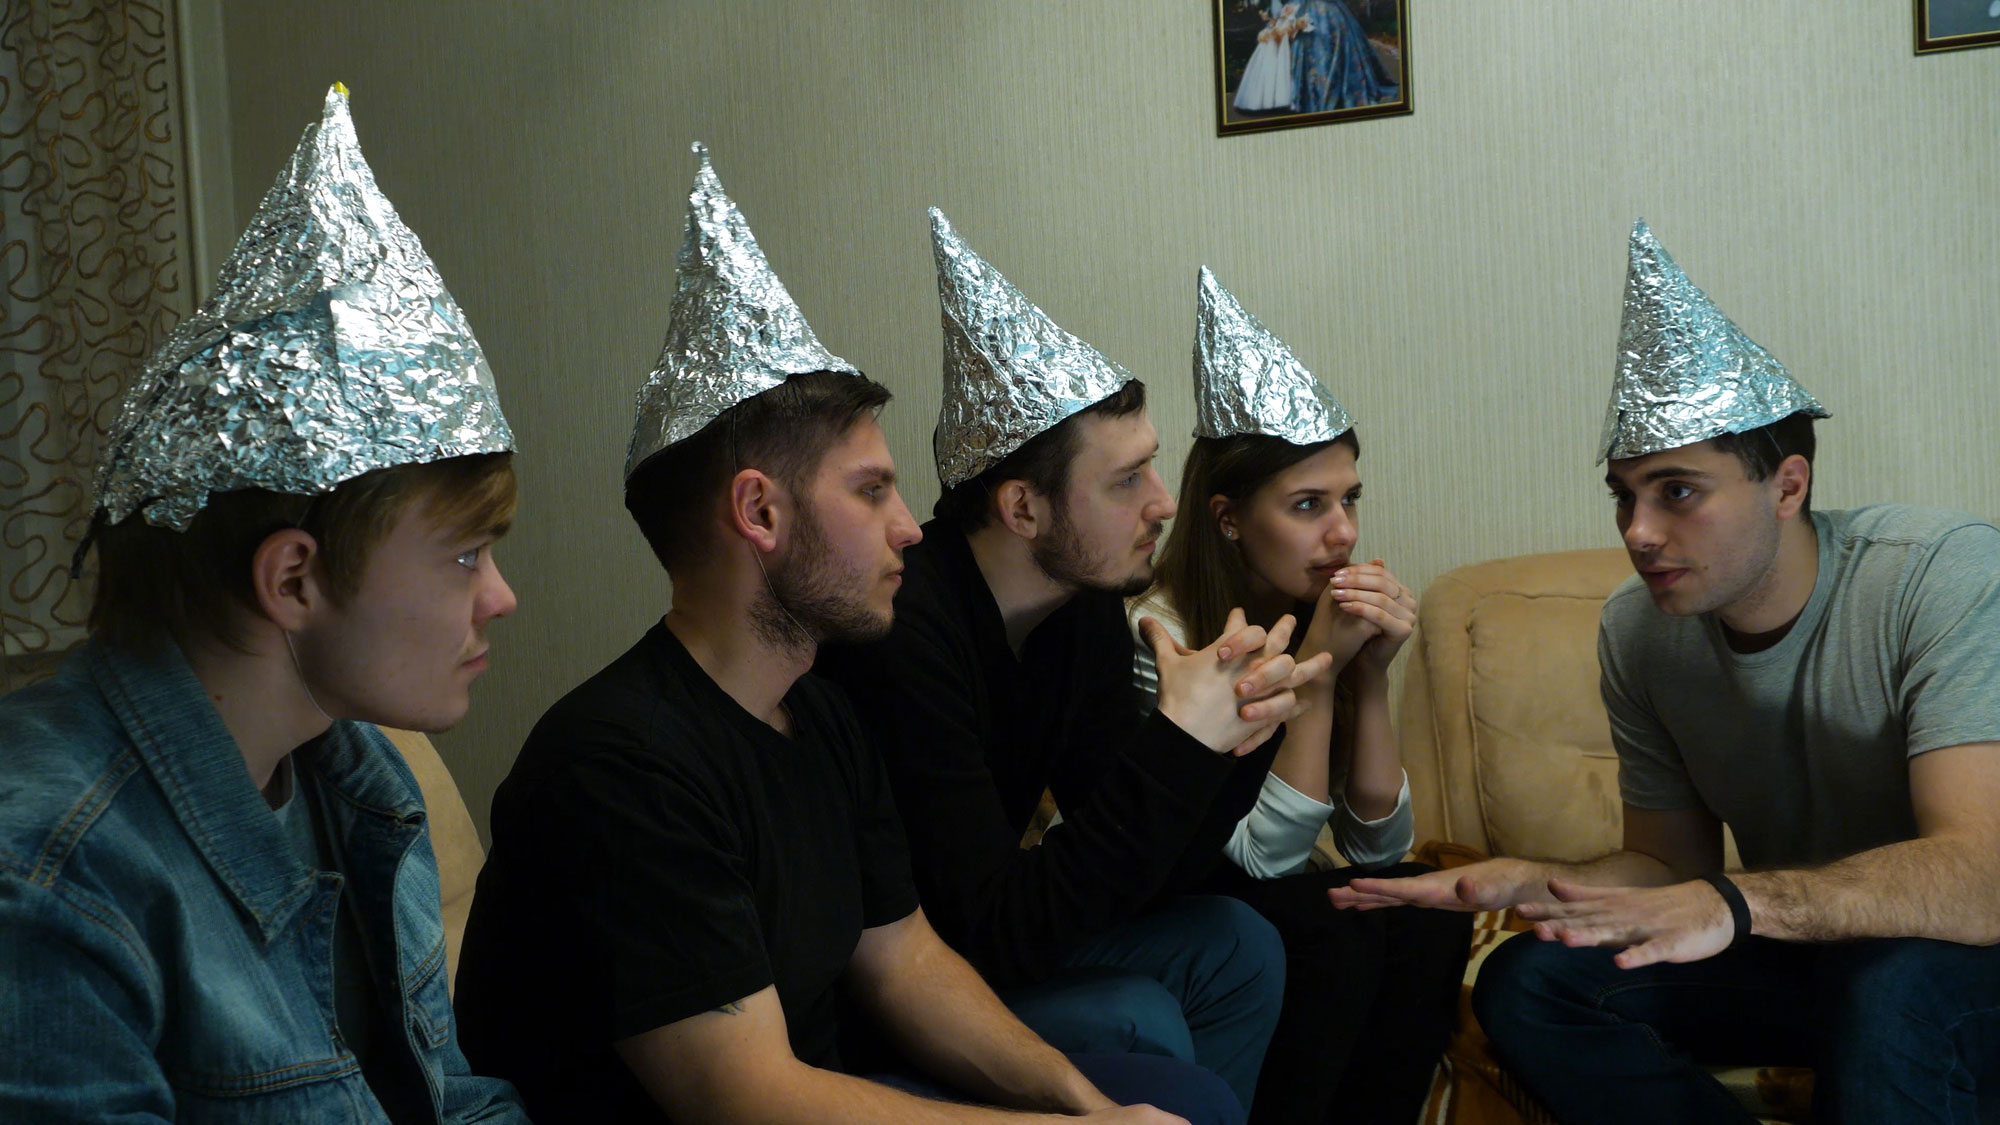 People with tinfoil hats